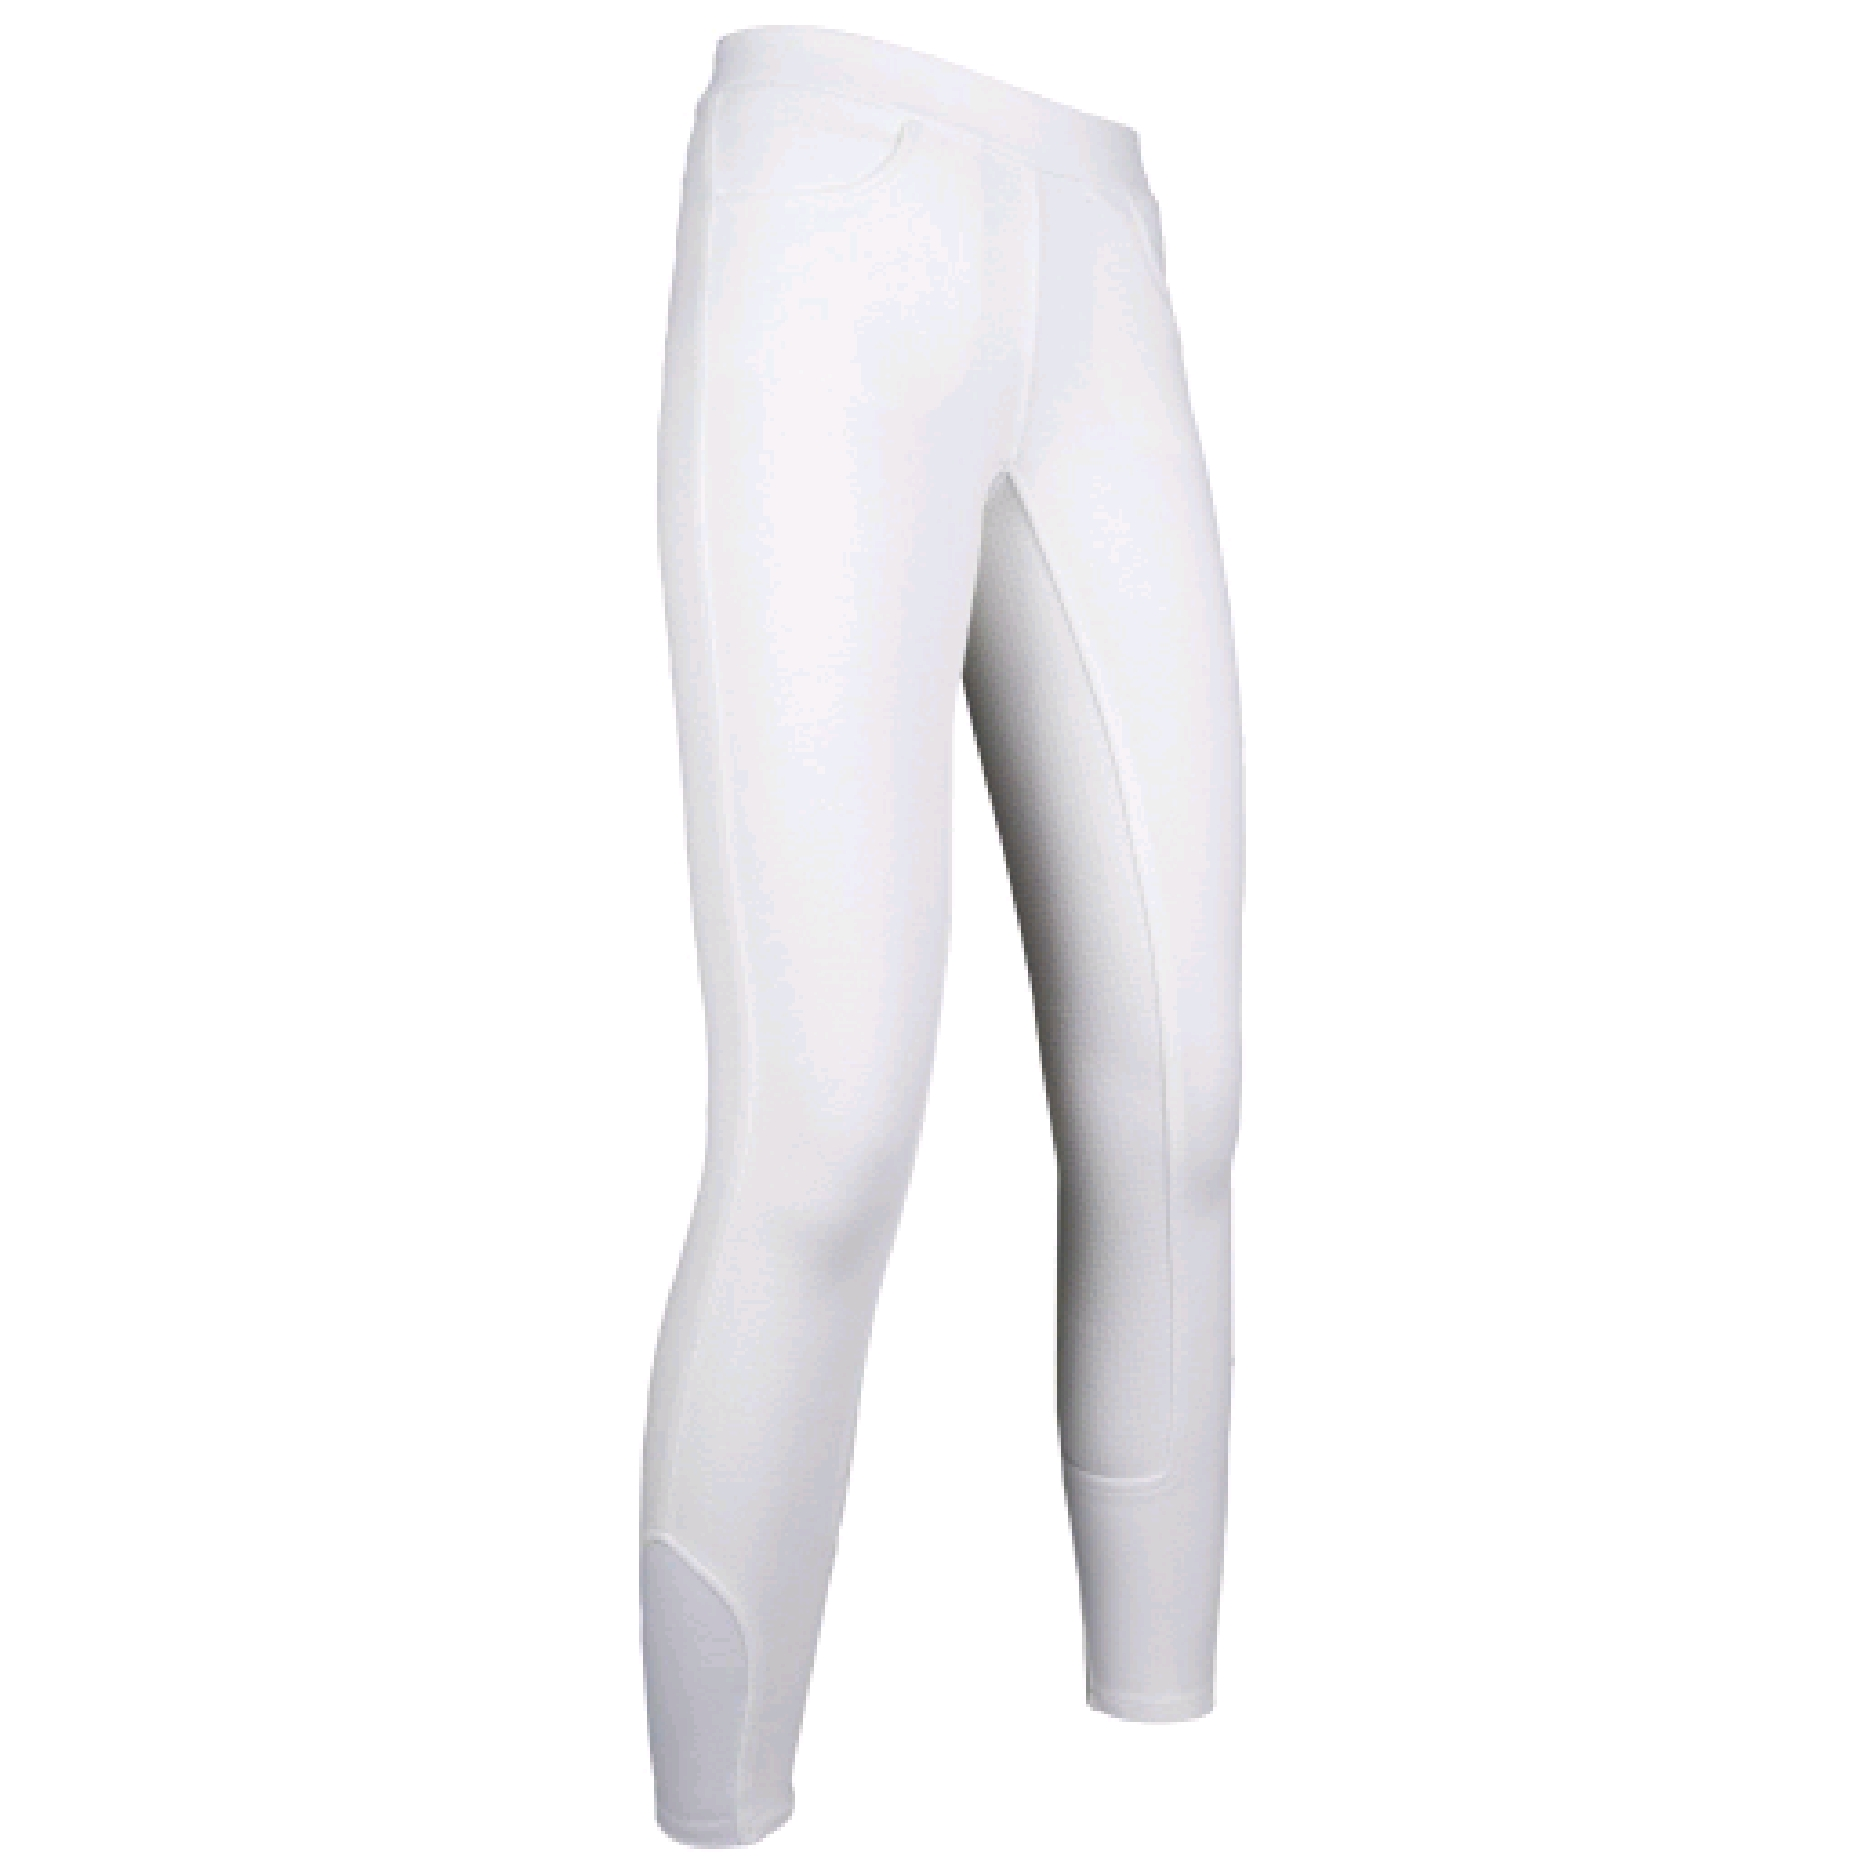 HKM Full Seat Yvi White Riding Leggings